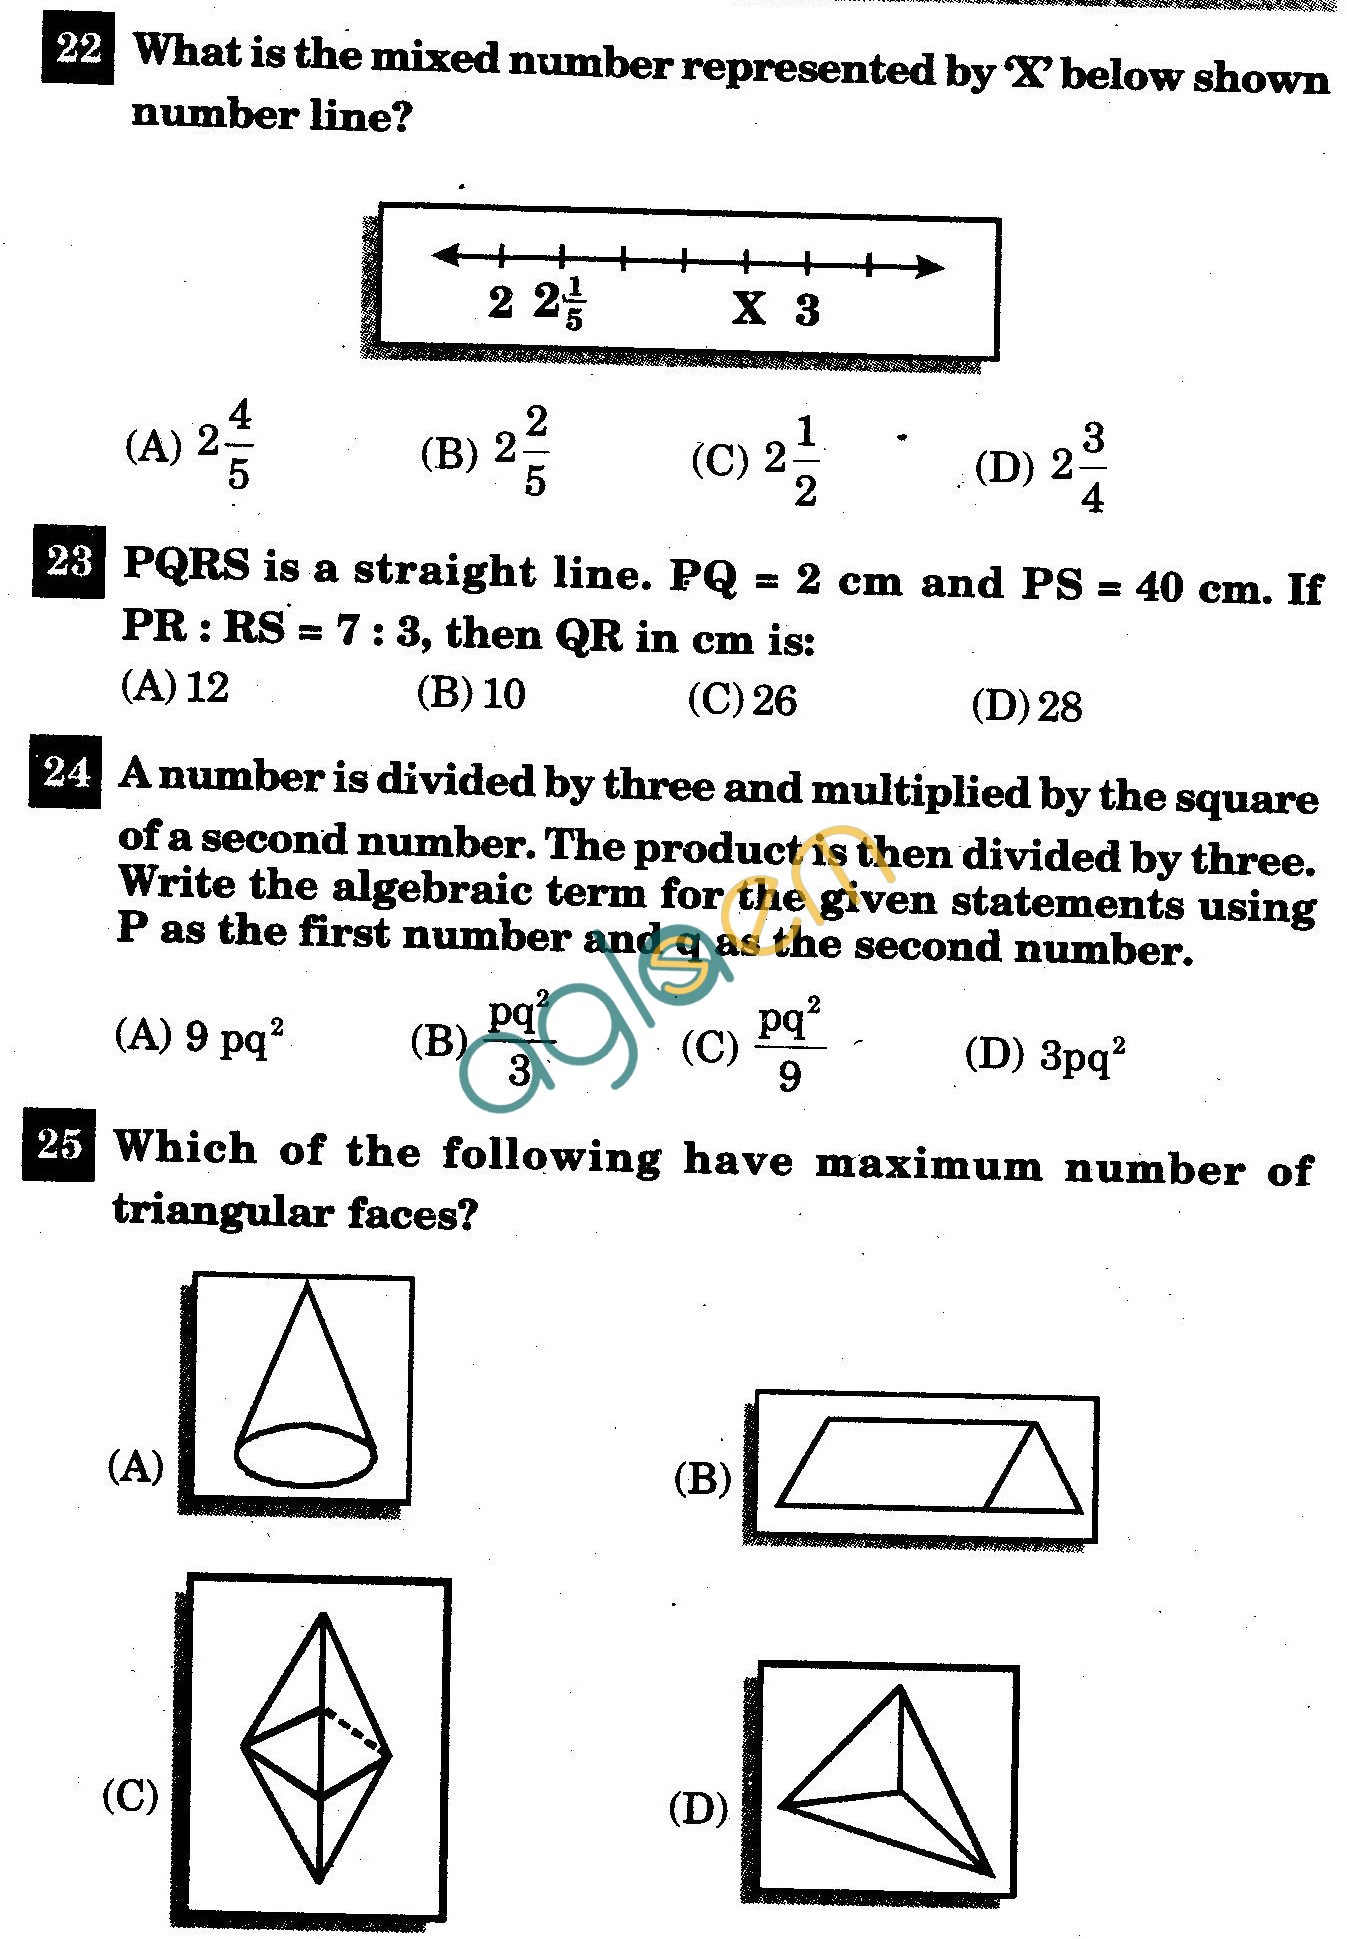 NSTSE 2011: Class VI Question Paper with Answers - Mathematics